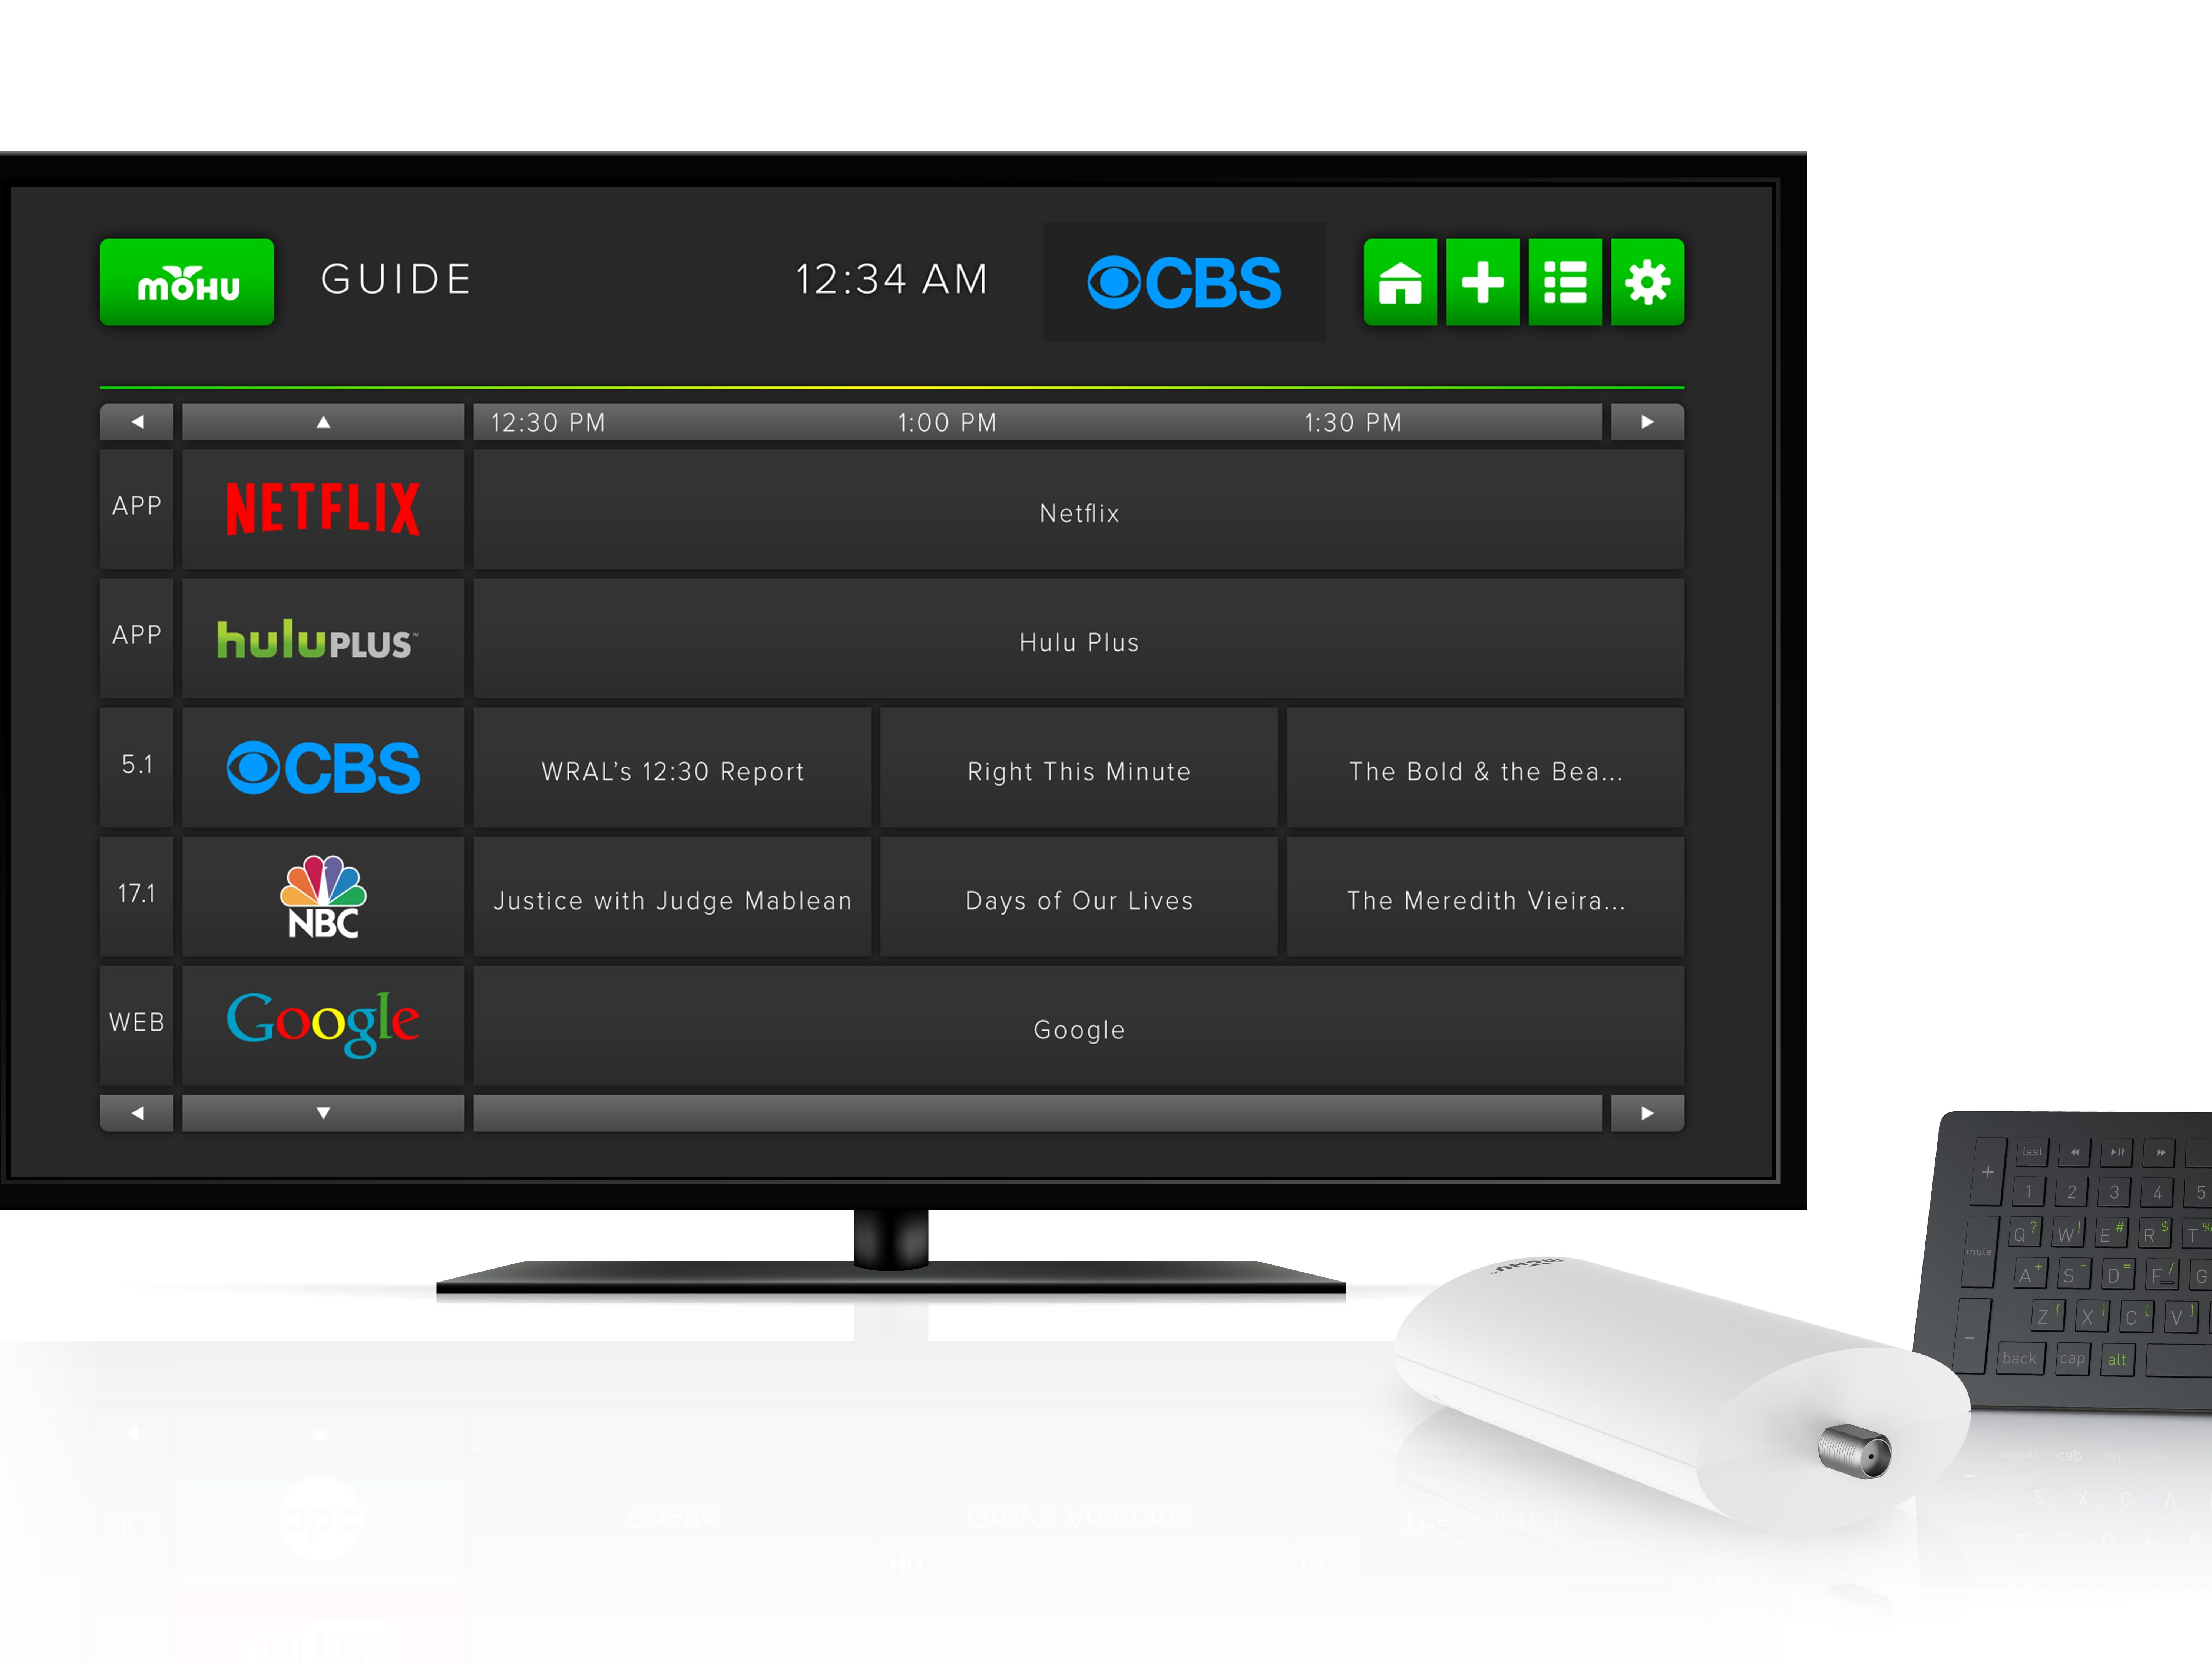 Mohu Channels is a device that brings together your Over-the-Air (OTA) broadcast TV channels, streaming apps and Web content in one simple viewing experience. Shown here is the on-screen guide, device and remote control.